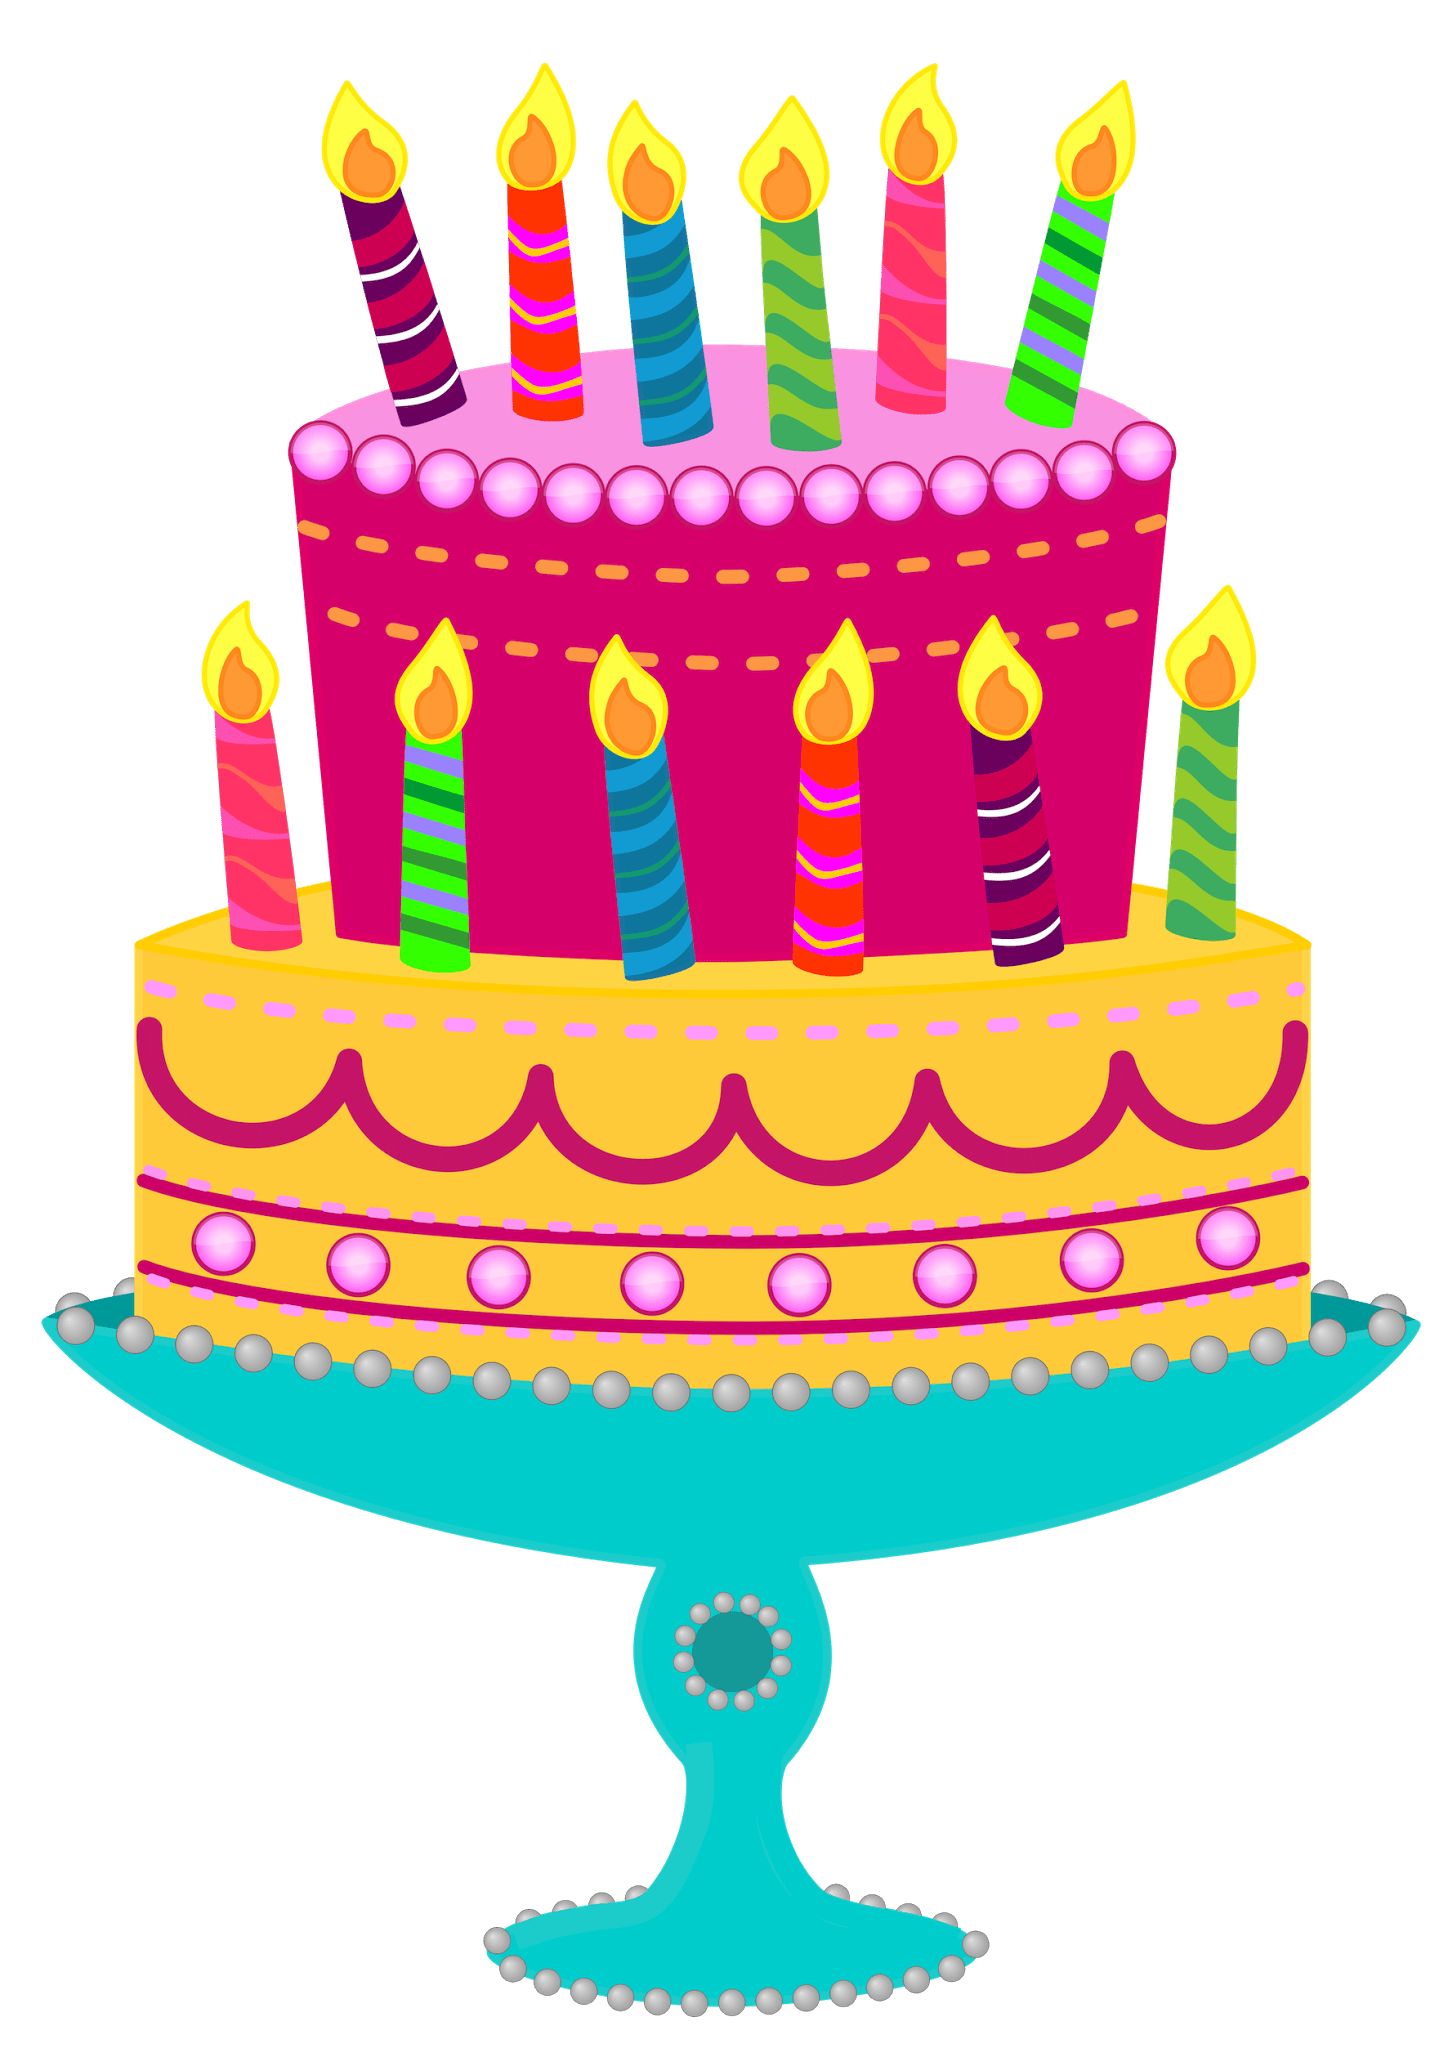 Birthday Clipart For Him : birthday, clipart, Birthday, Clipart, Coloring, Pages, Other, Printable, Design, Themes